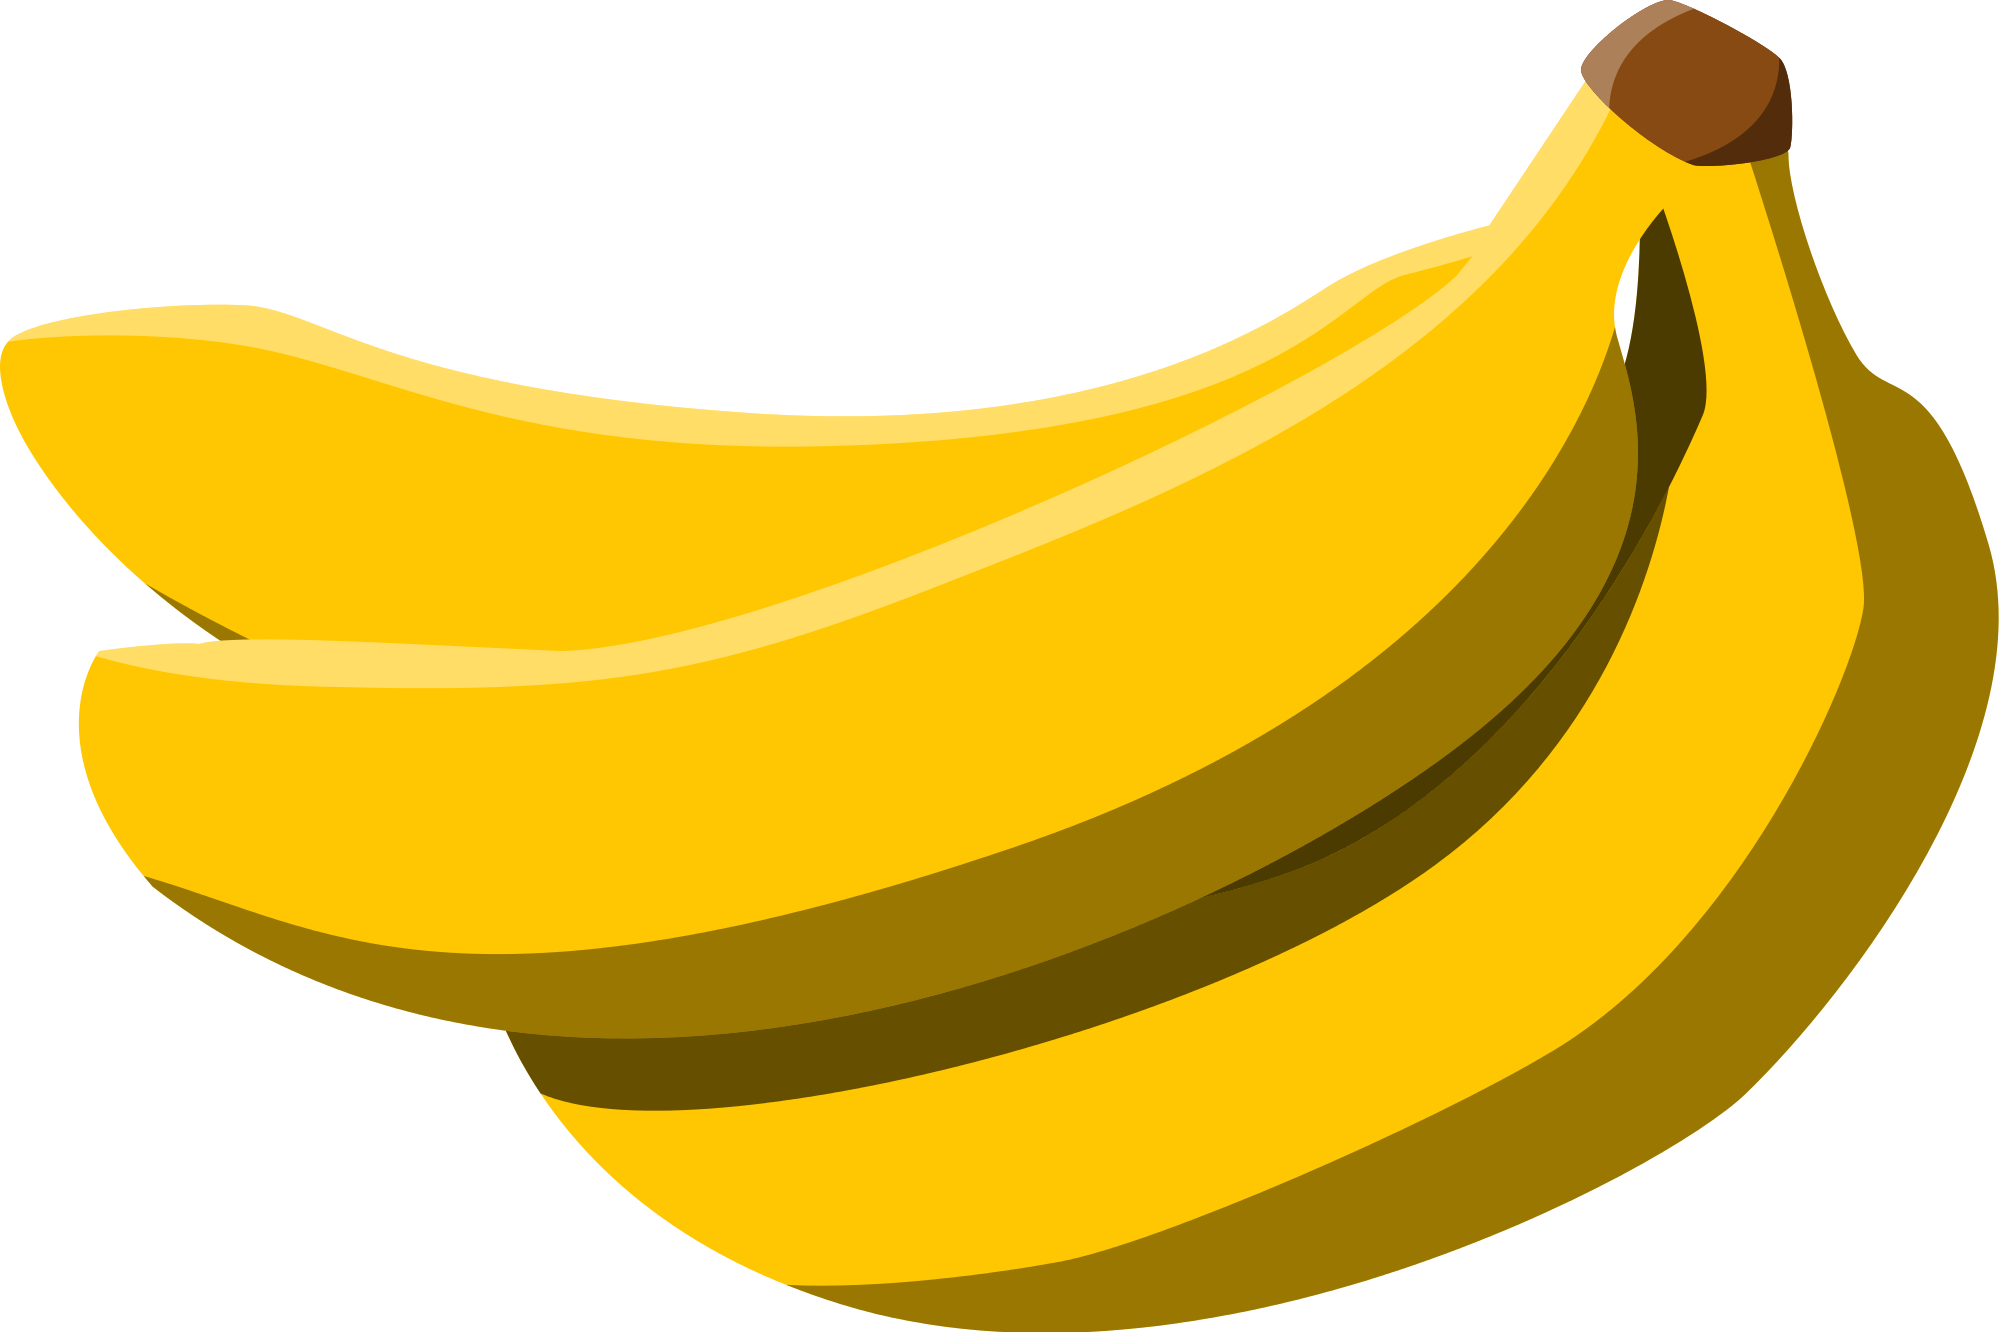 jpg library stock File svg wikimedia commons. Bananas vector